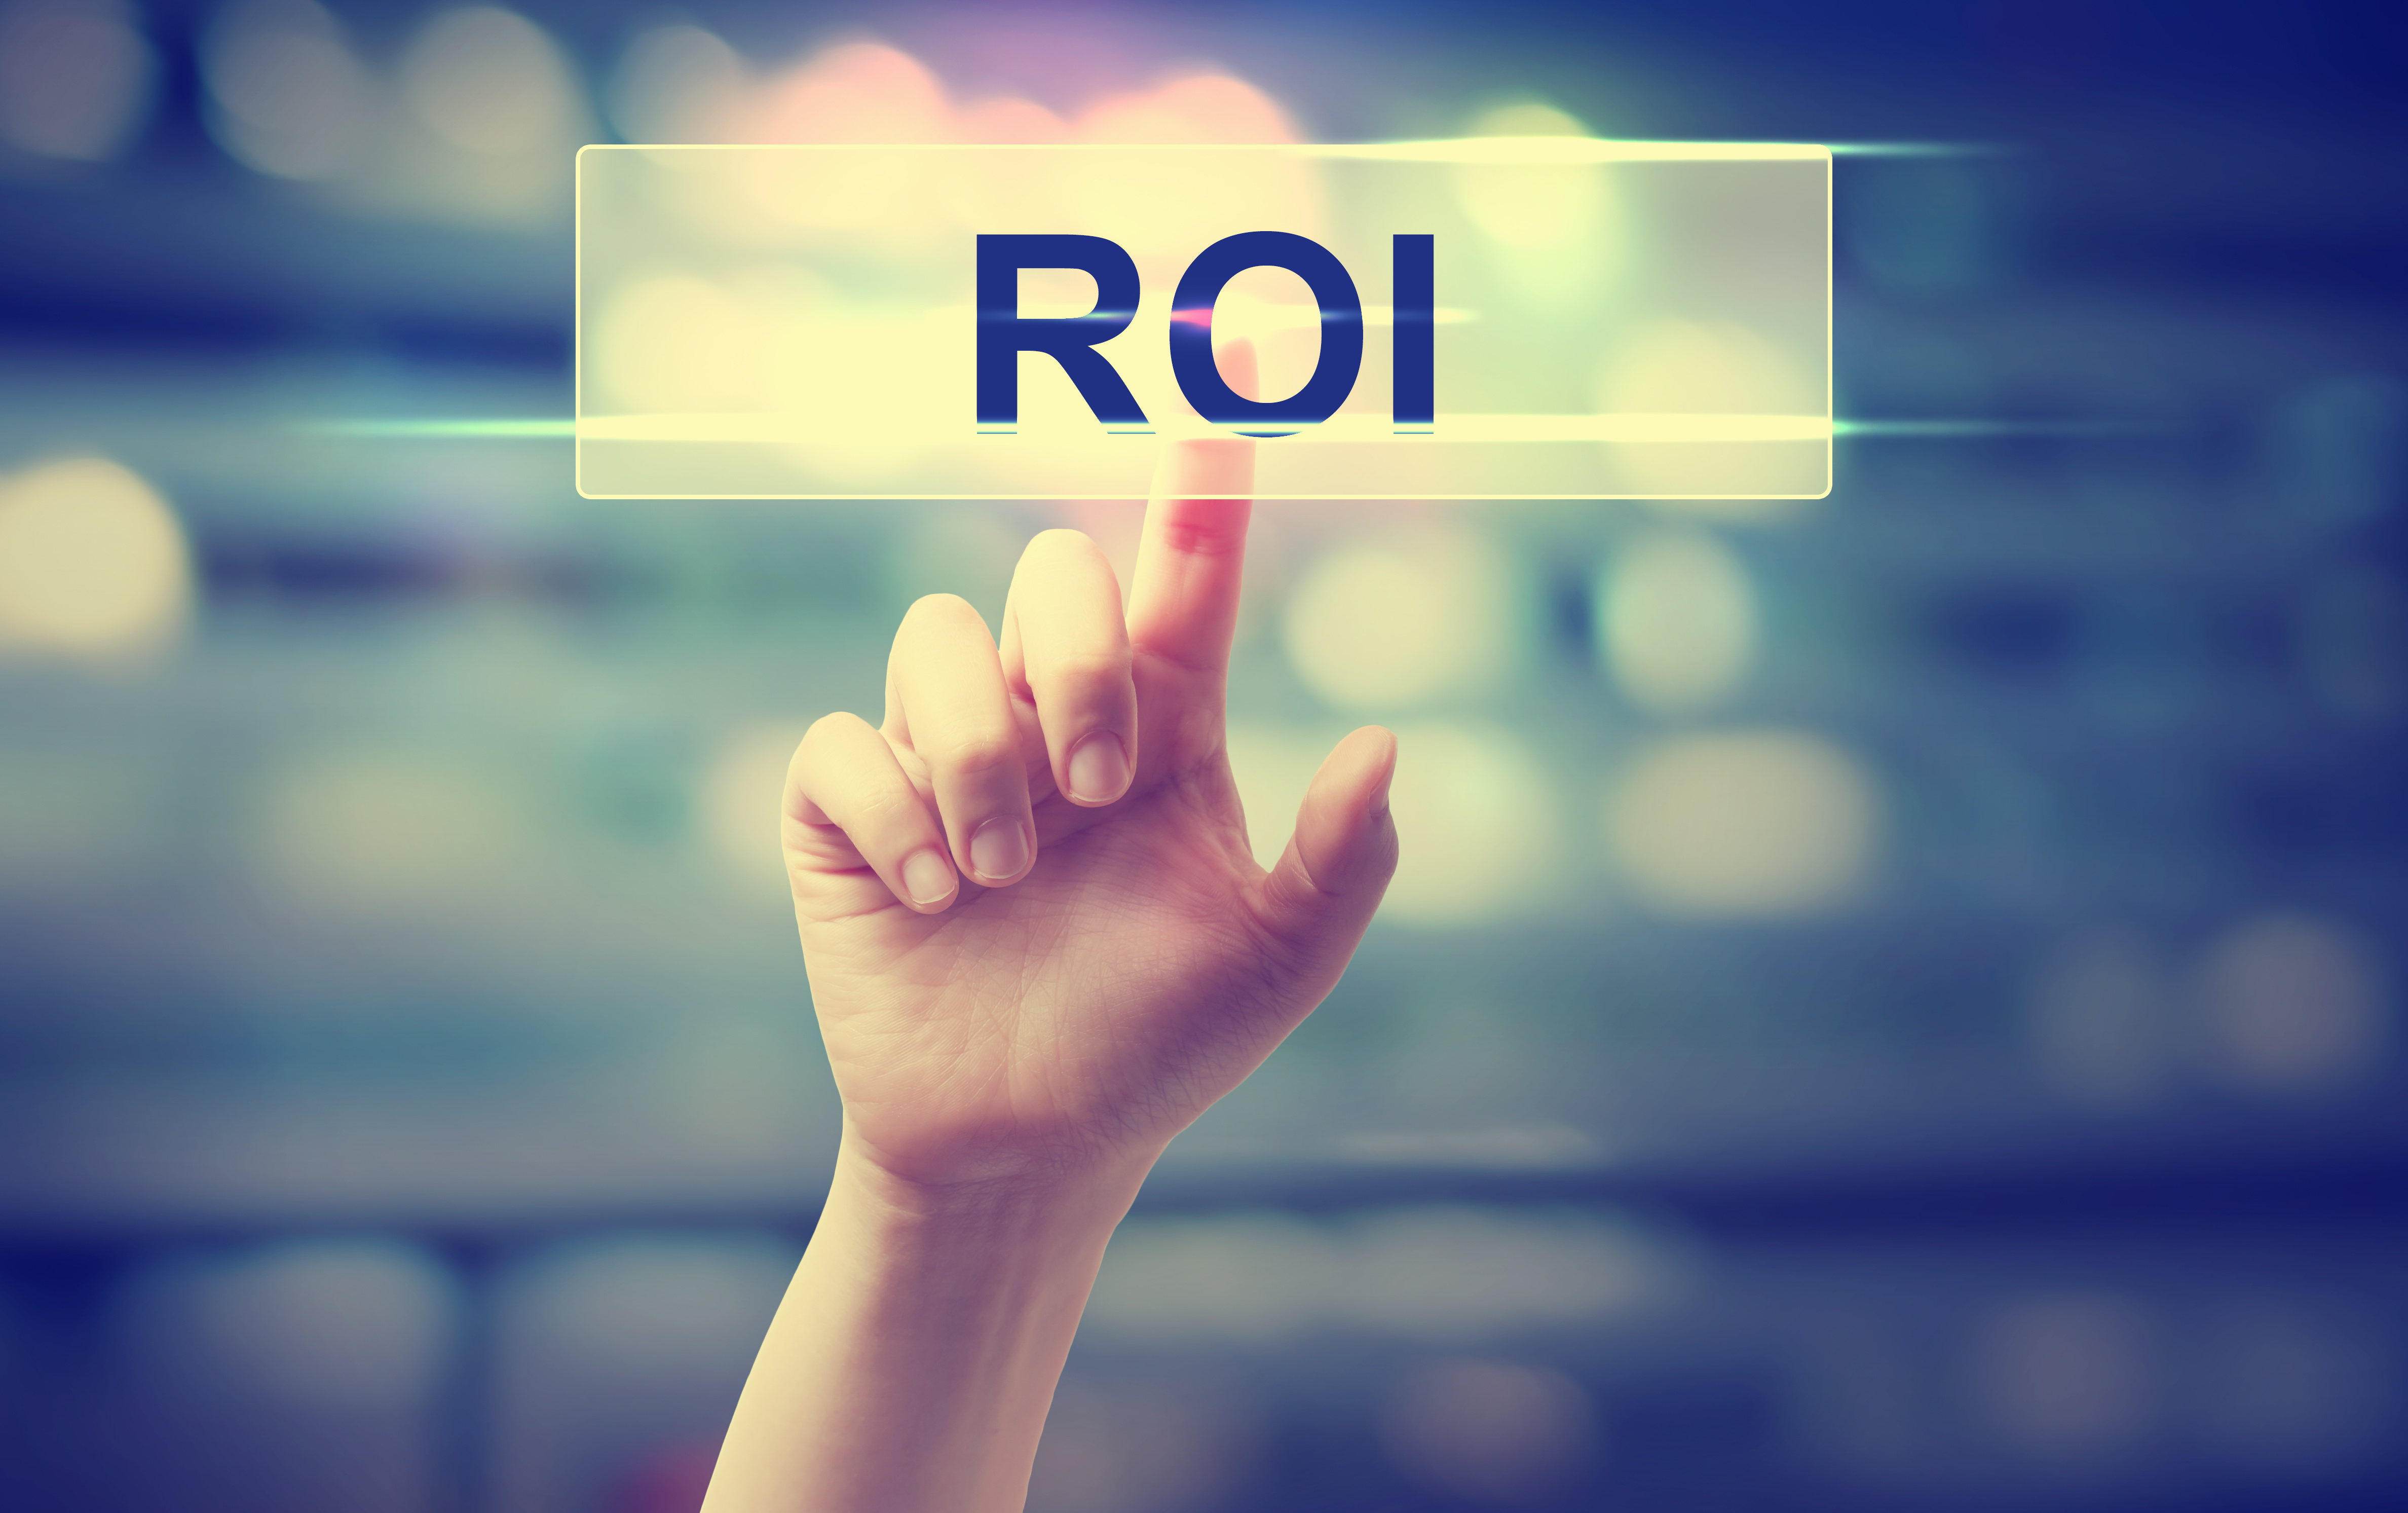 ROI concept with hand pressing a button on blurred abstract background